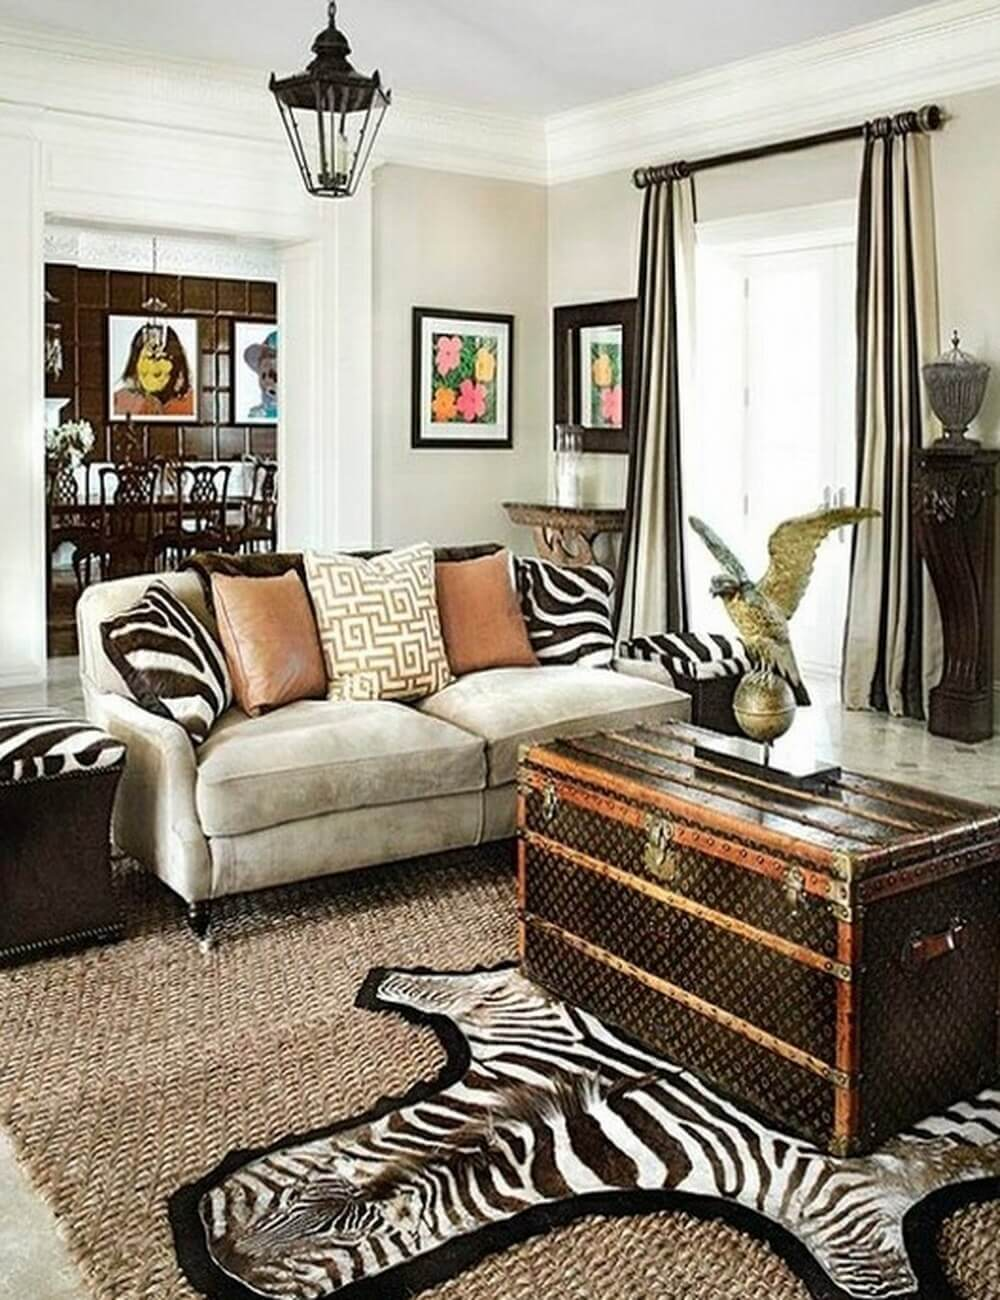 10 Fierce Interior Design Ideas With Zebra Print Accent